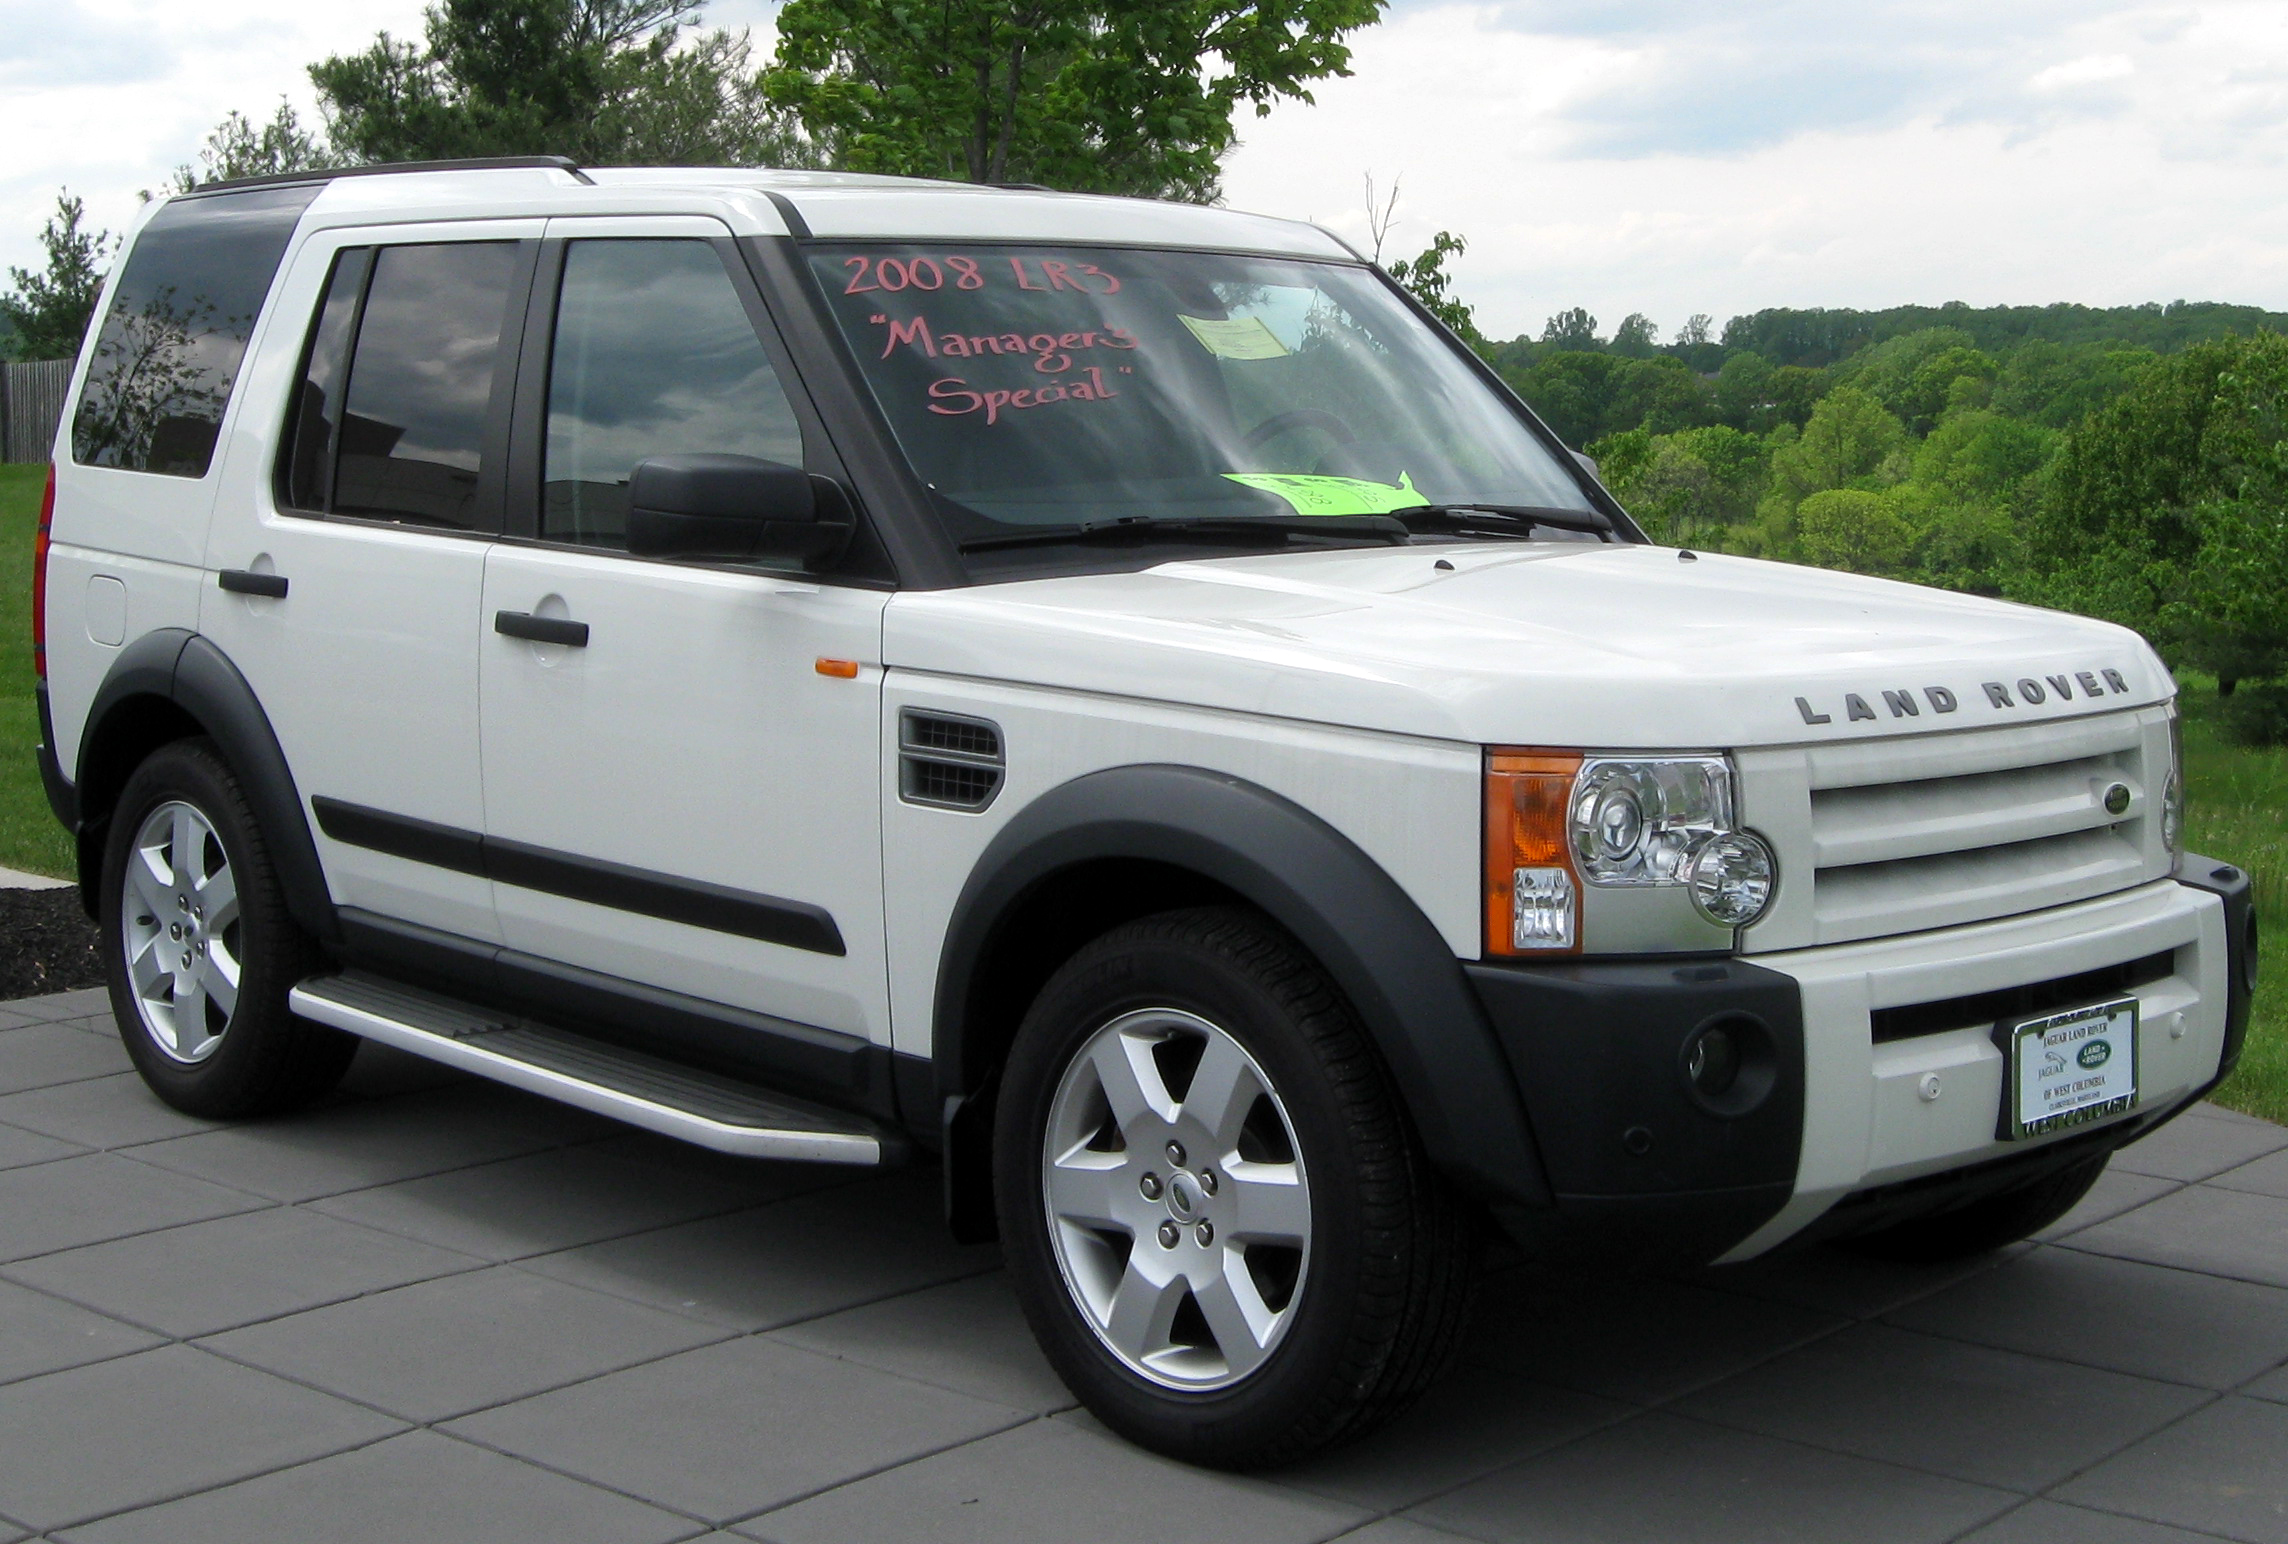 File 2008 Land Rover LR3 05 06 2011 Wikimedia mons